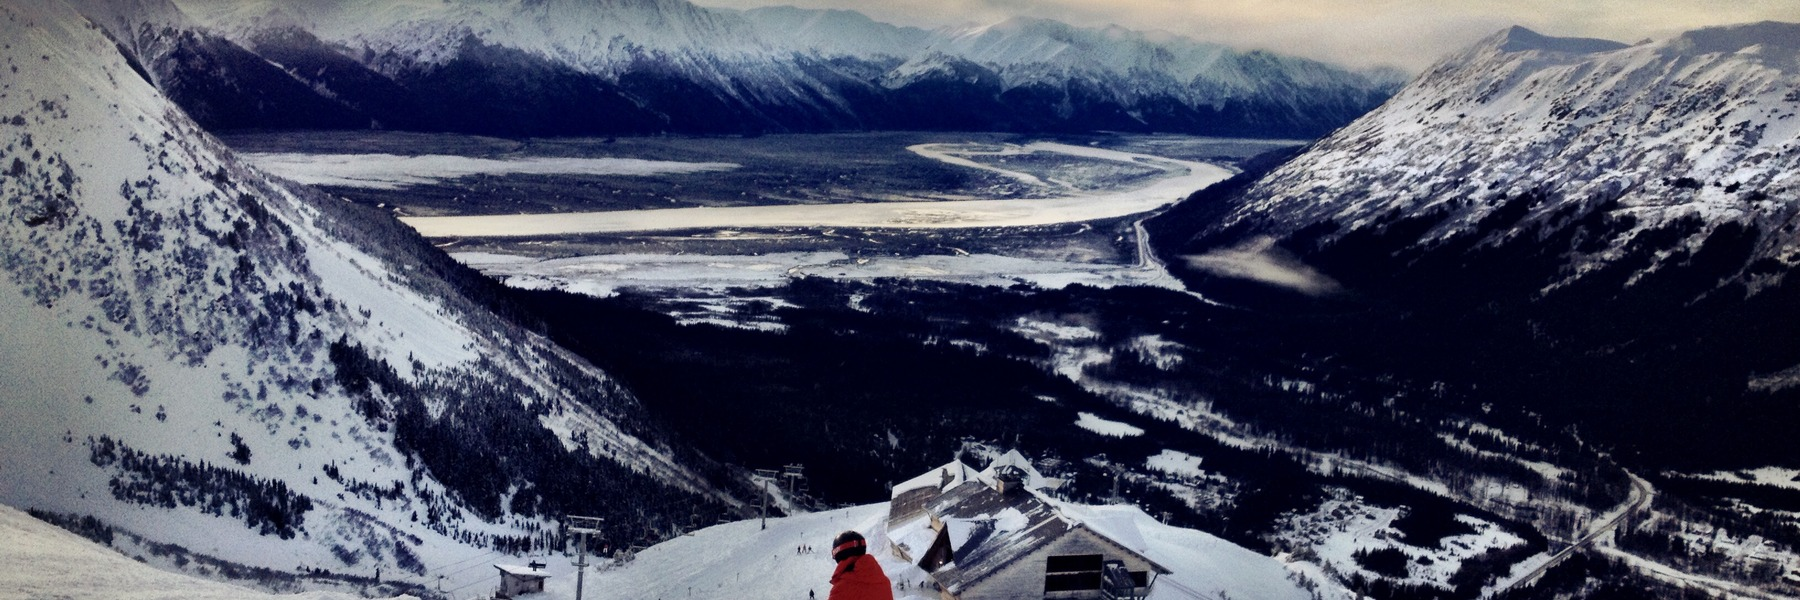 Ski Vacation Package - Alyeska, Alaska